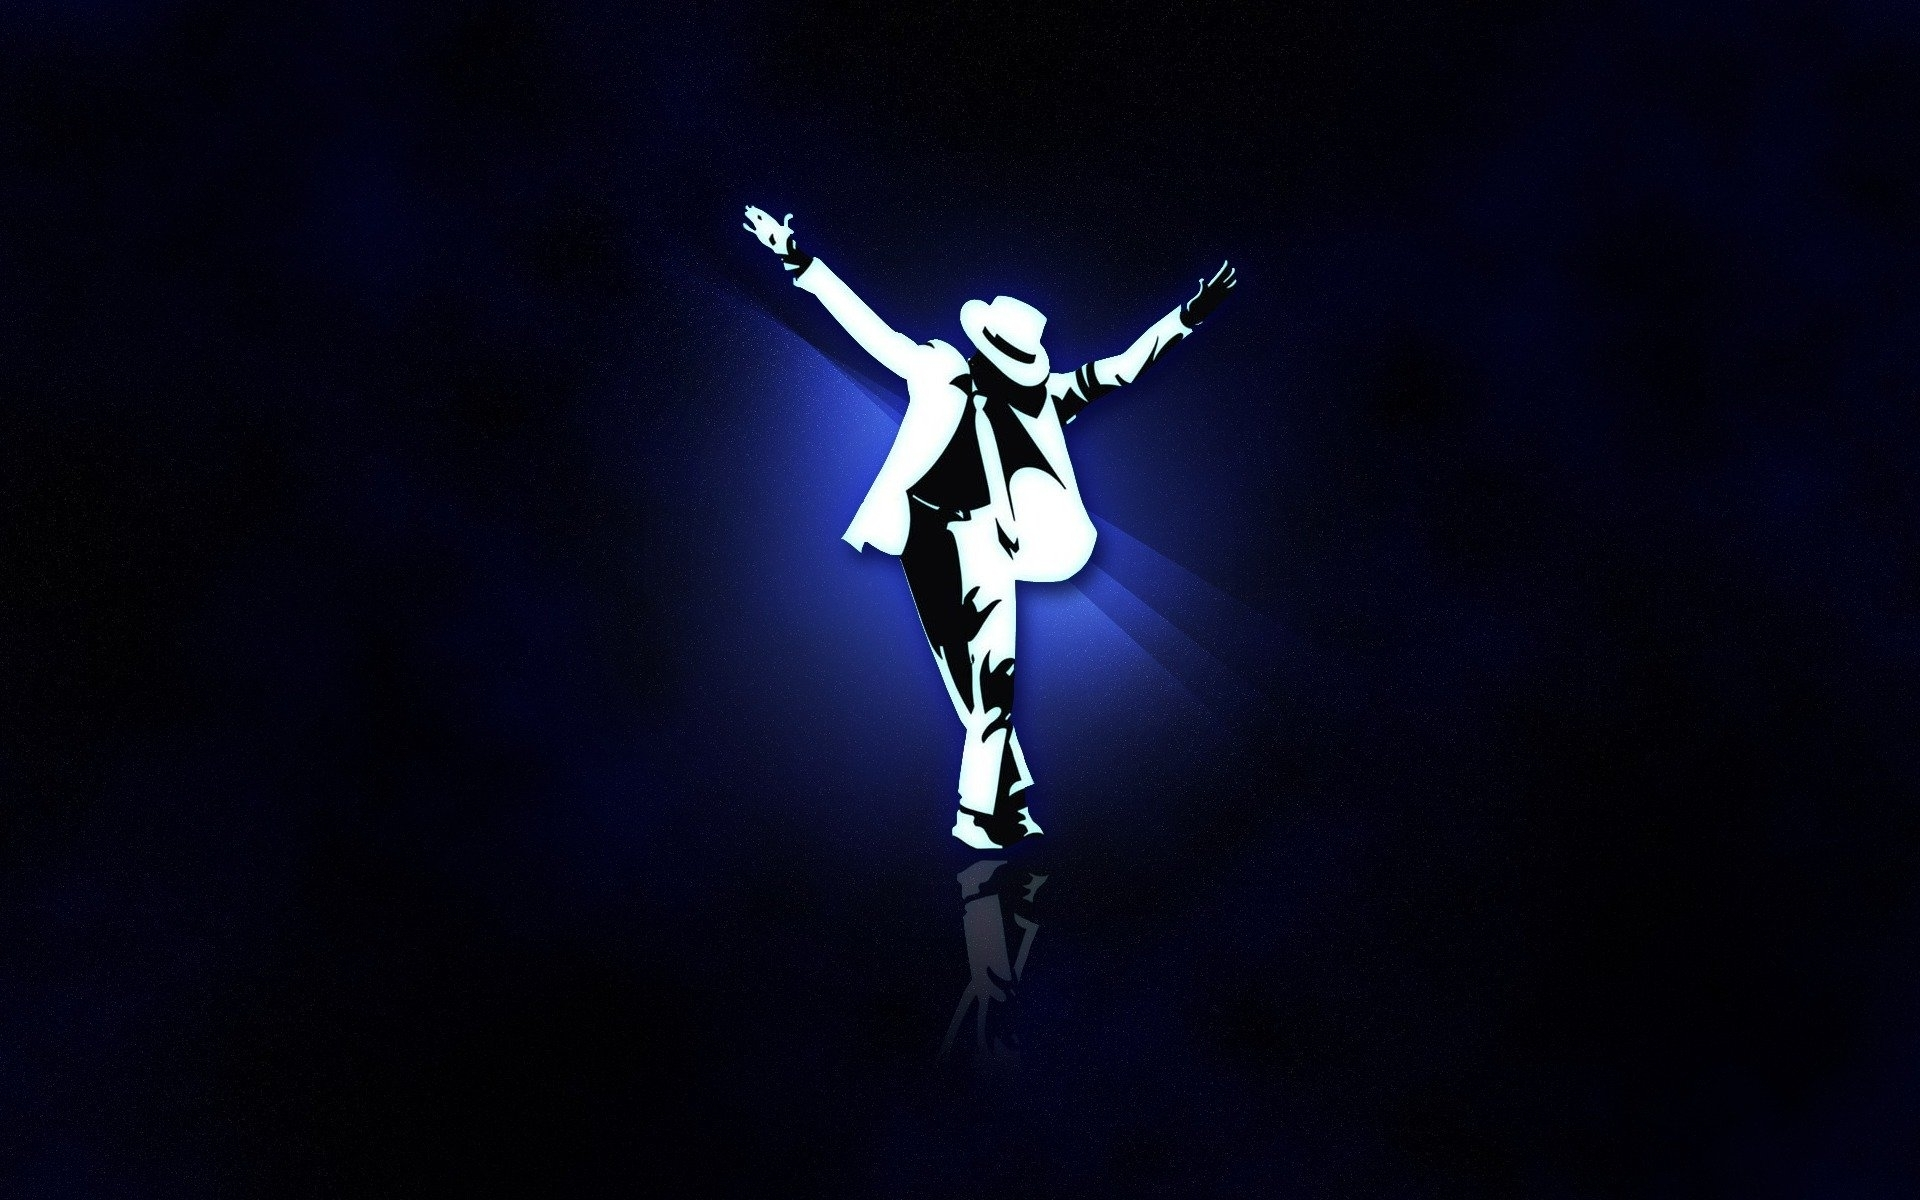 michael jackson moonwalk wallpapers mobile ~ desktop wallpaper box